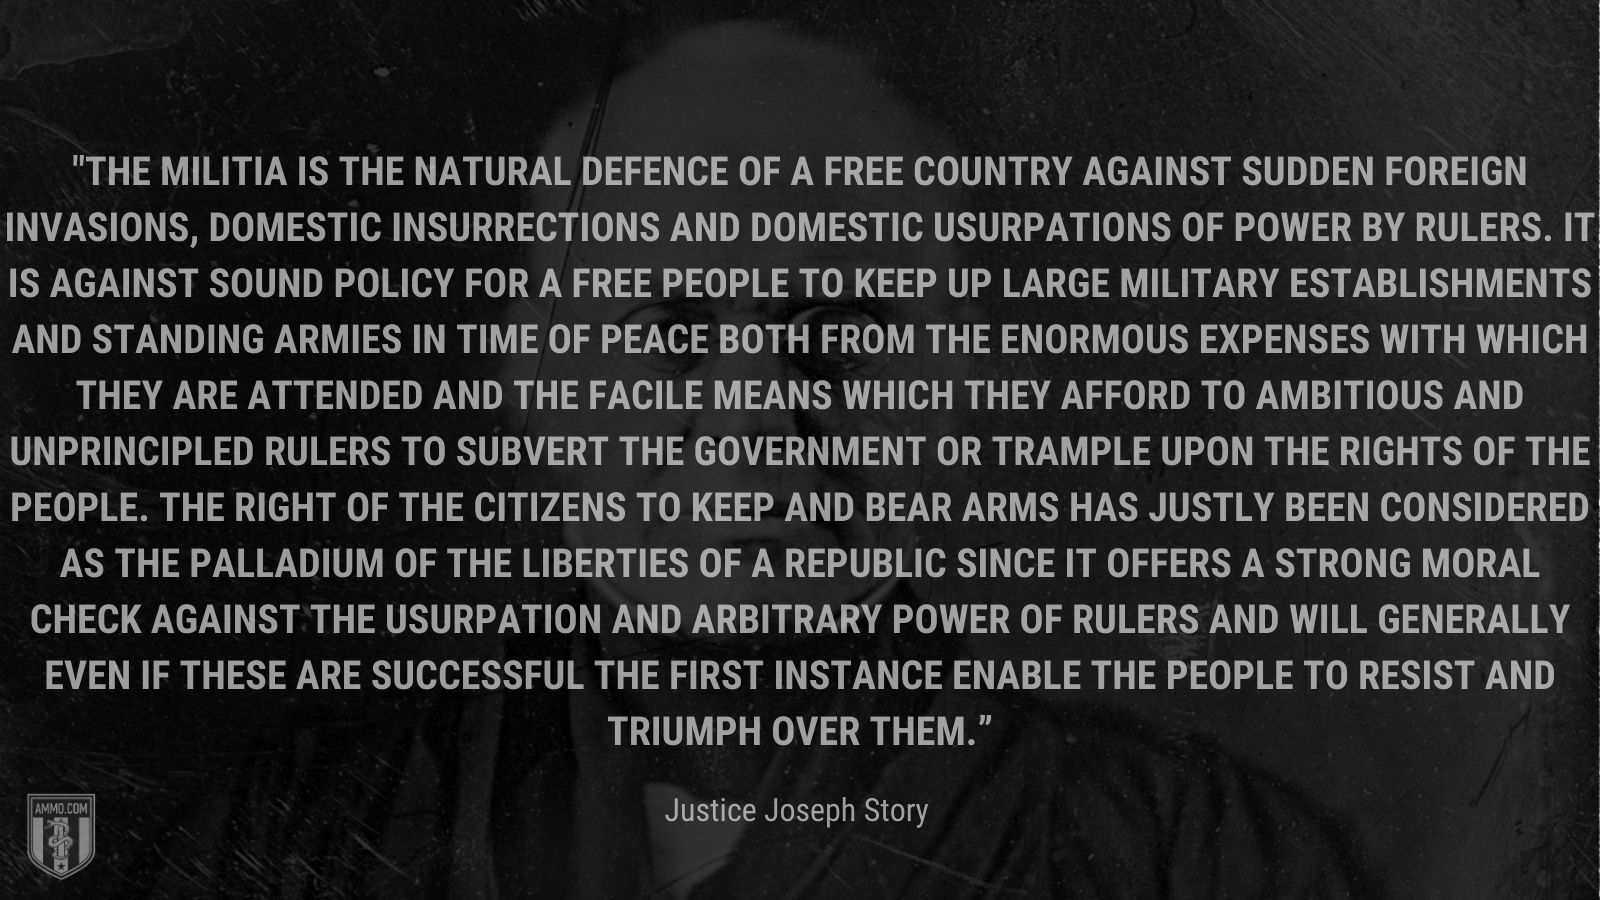 """""""The militia is the natural defence of a free country against sudden foreign invasions, domestic insurrections and domestic usurpations of power by rulers. It is against sound policy for a free people to keep up large military establishments and standing armies in time of peace both from the enormous expenses with which they are attended and the facile means which they afford to ambitious and unprincipled rulers to subvert the government or trample upon the rights of the people. The right of the citizens to keep and bear arms has justly been considered as the palladium of the liberties of a republic since it offers a strong moral check against the usurpation and arbitrary power of rulers and will generally even if these are successful the first instance enable the people to resist and triumph over them."""" - Justice Joseph Story"""